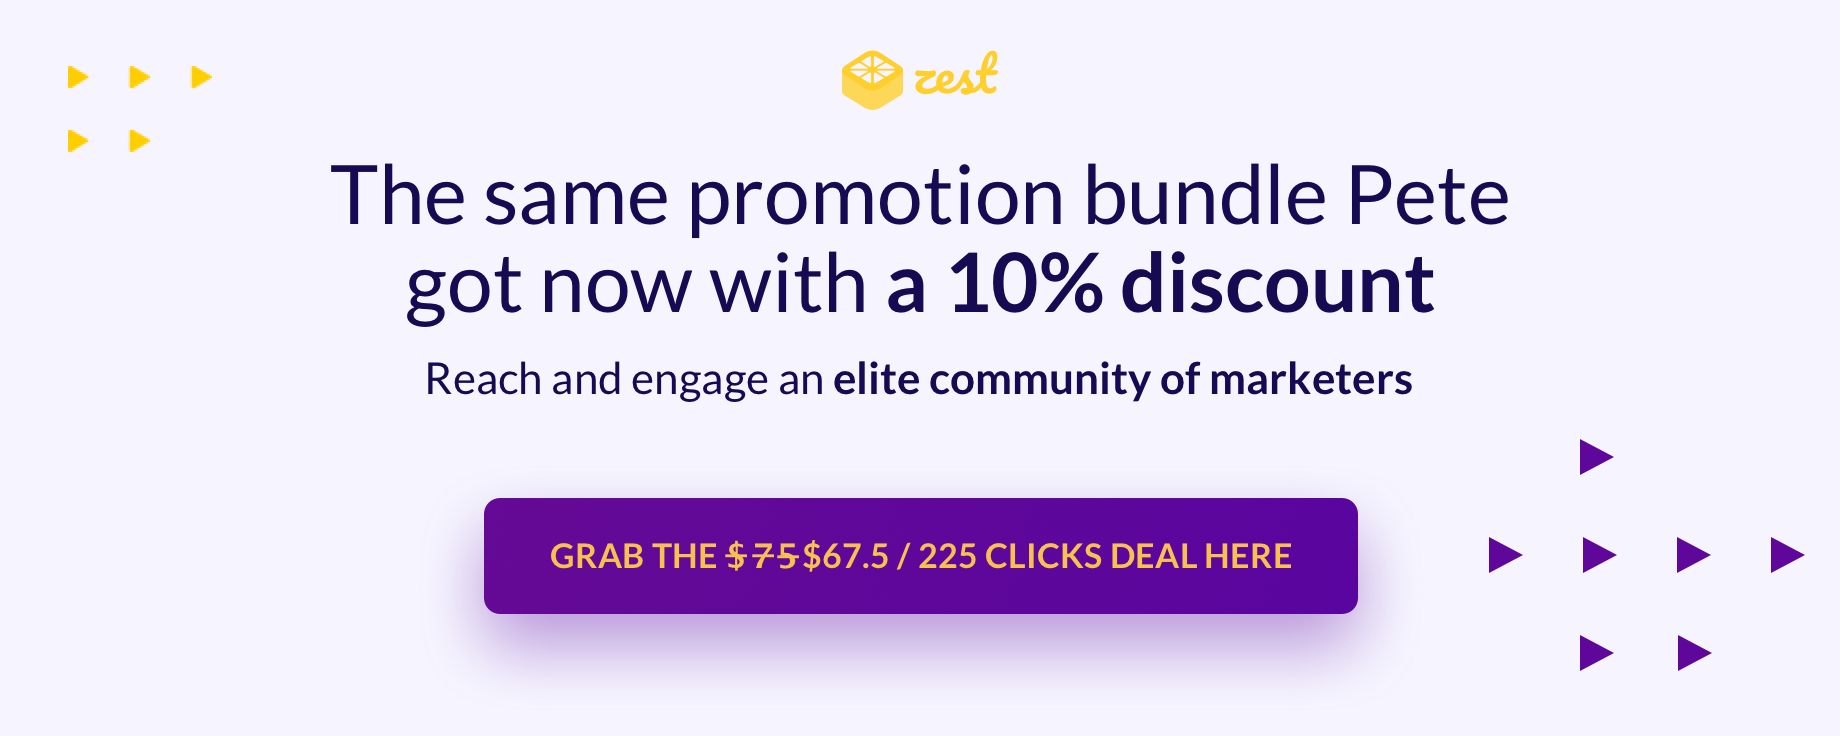 Banner offering Zest's discounted content promotion bundle of 225 clicks for $67.5